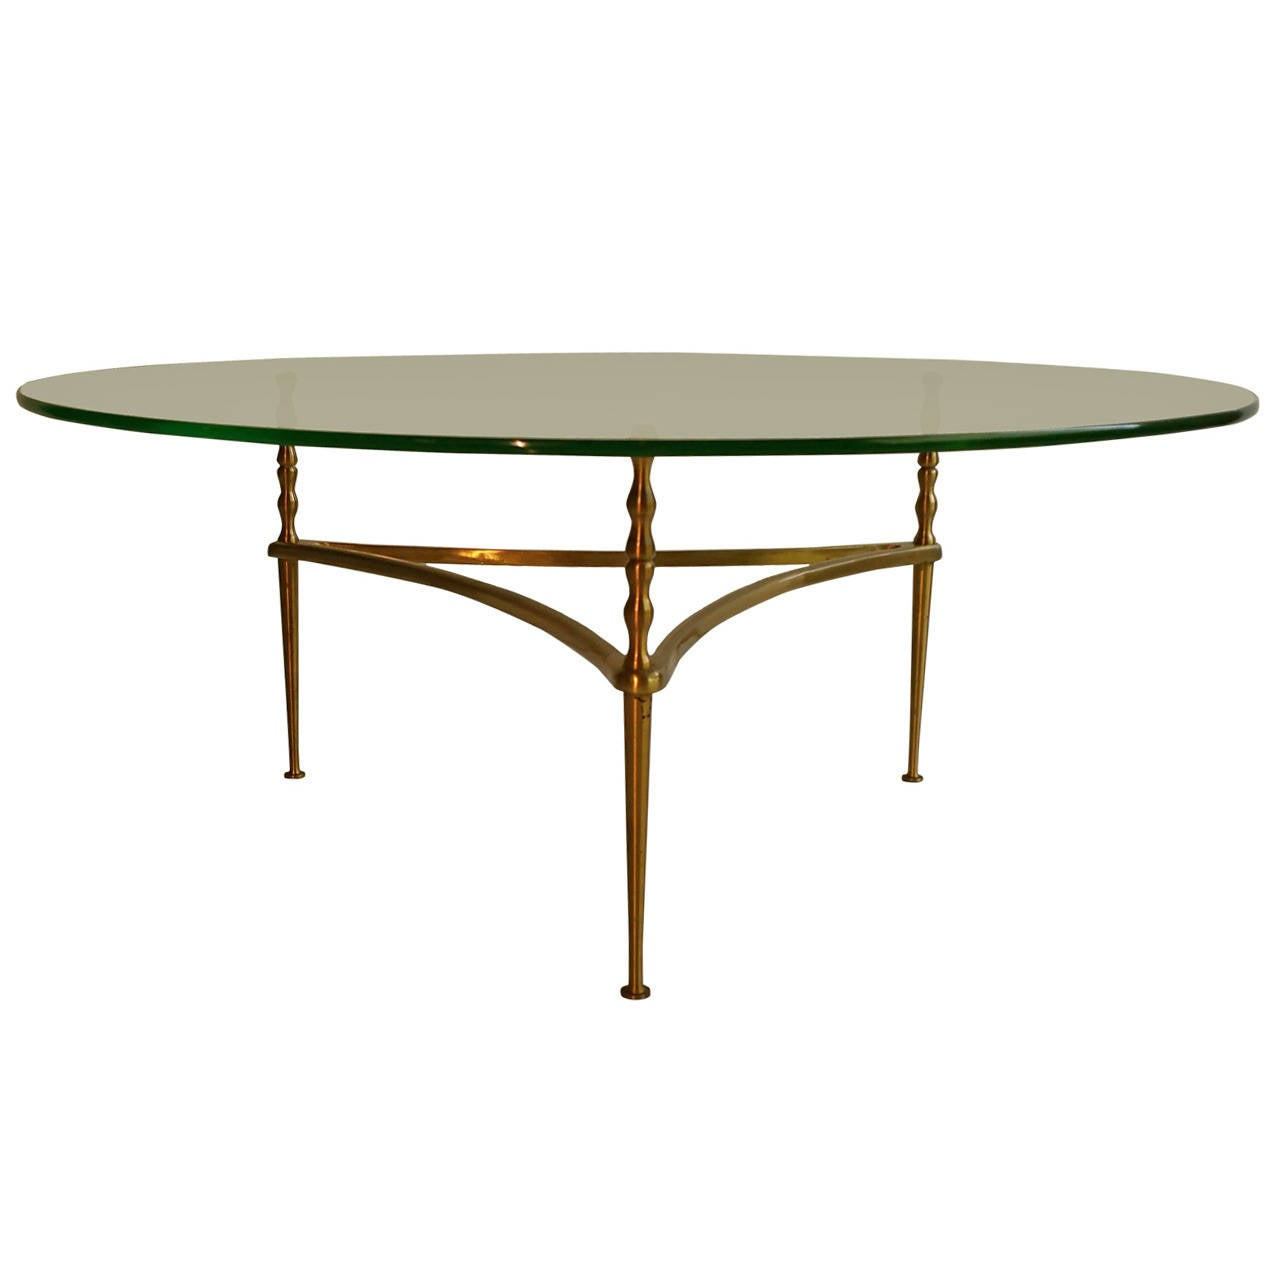 Modernist Italian Glass And Brass Coffee Table Manner Of Gio Ponti At 1stdibs